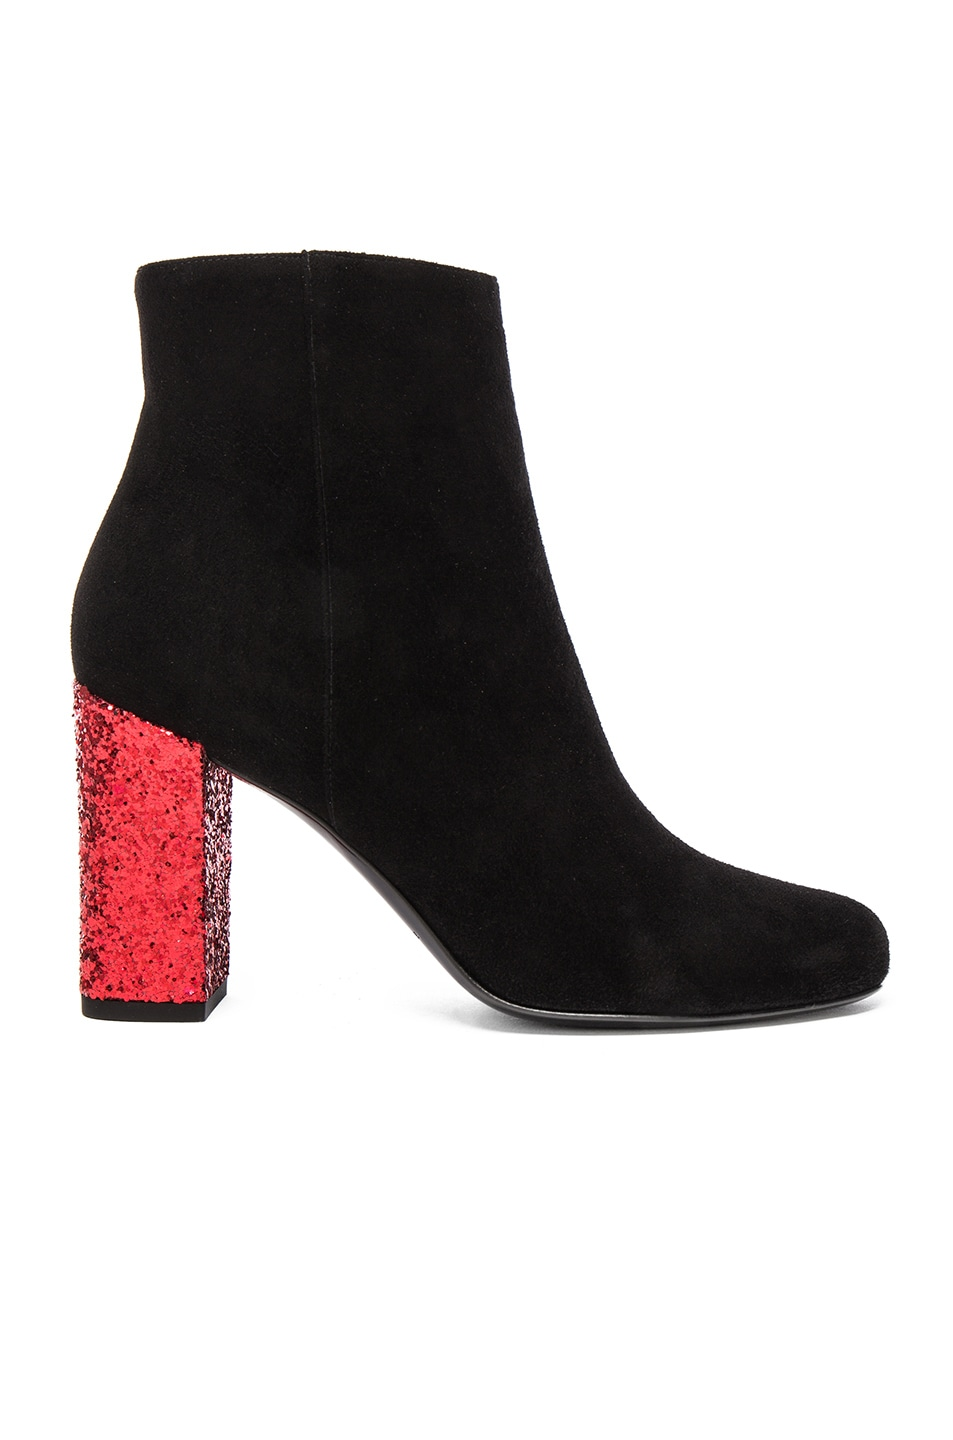 Image 1 of Saint Laurent Babies Suede & Glitter Boots in Black & Red